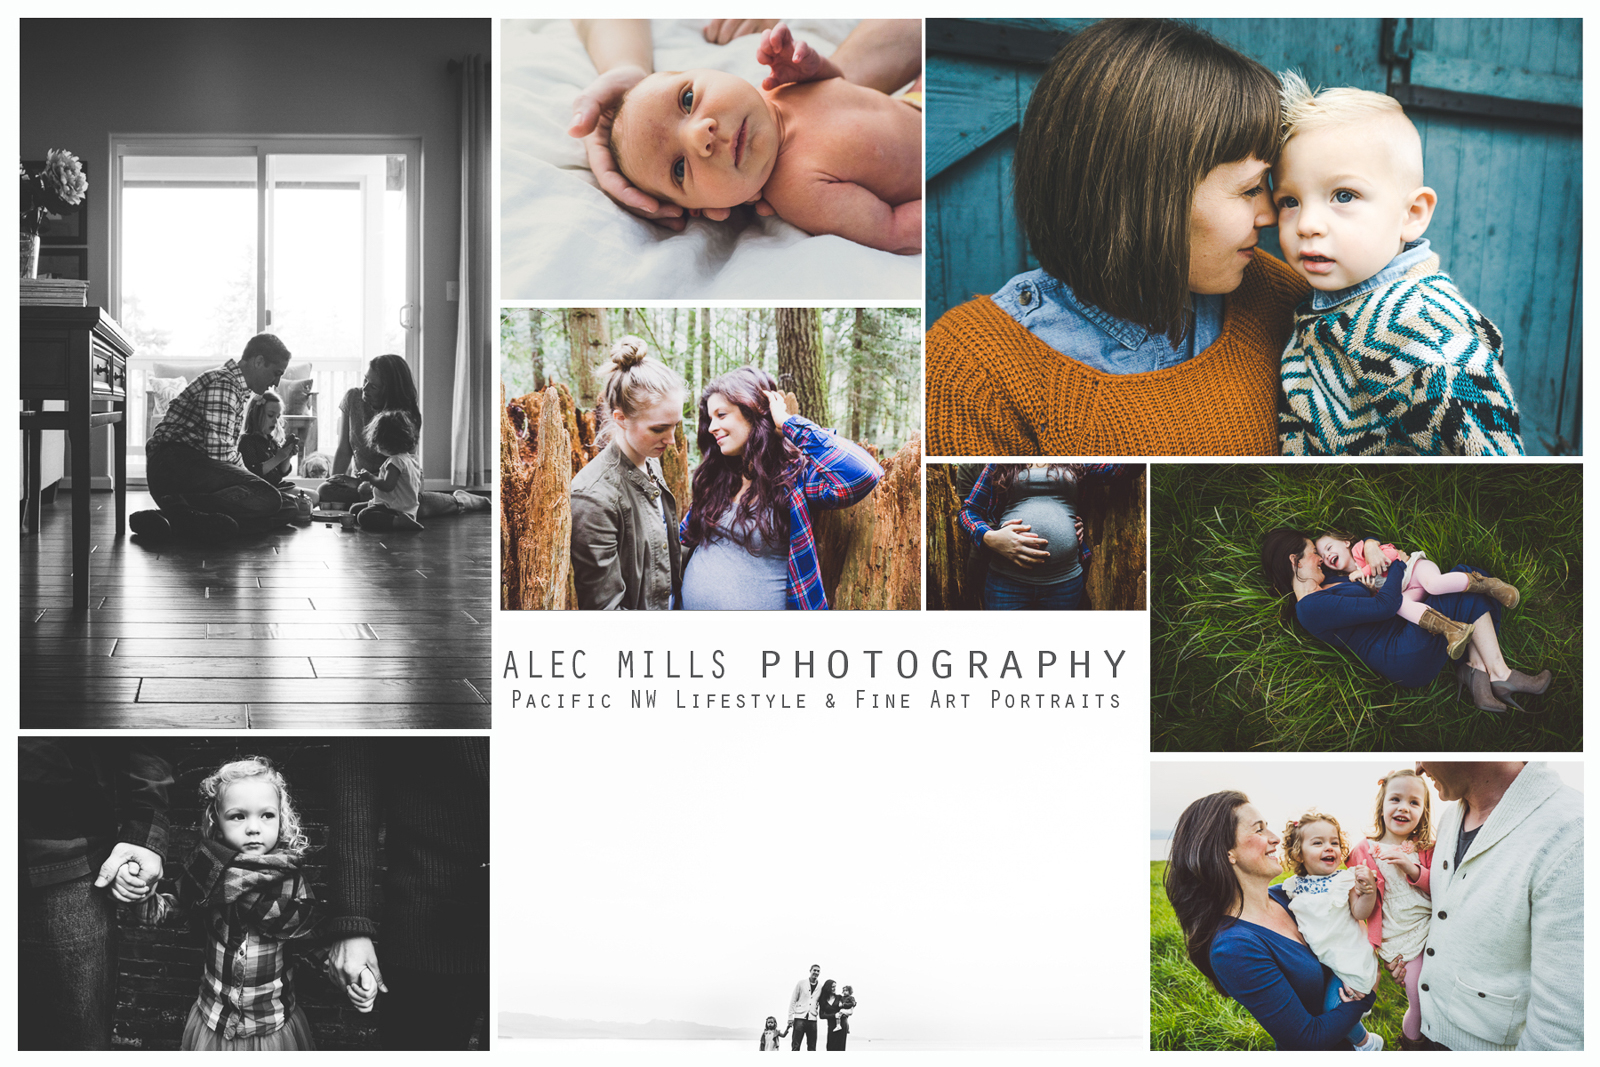 Alec Mills Photography